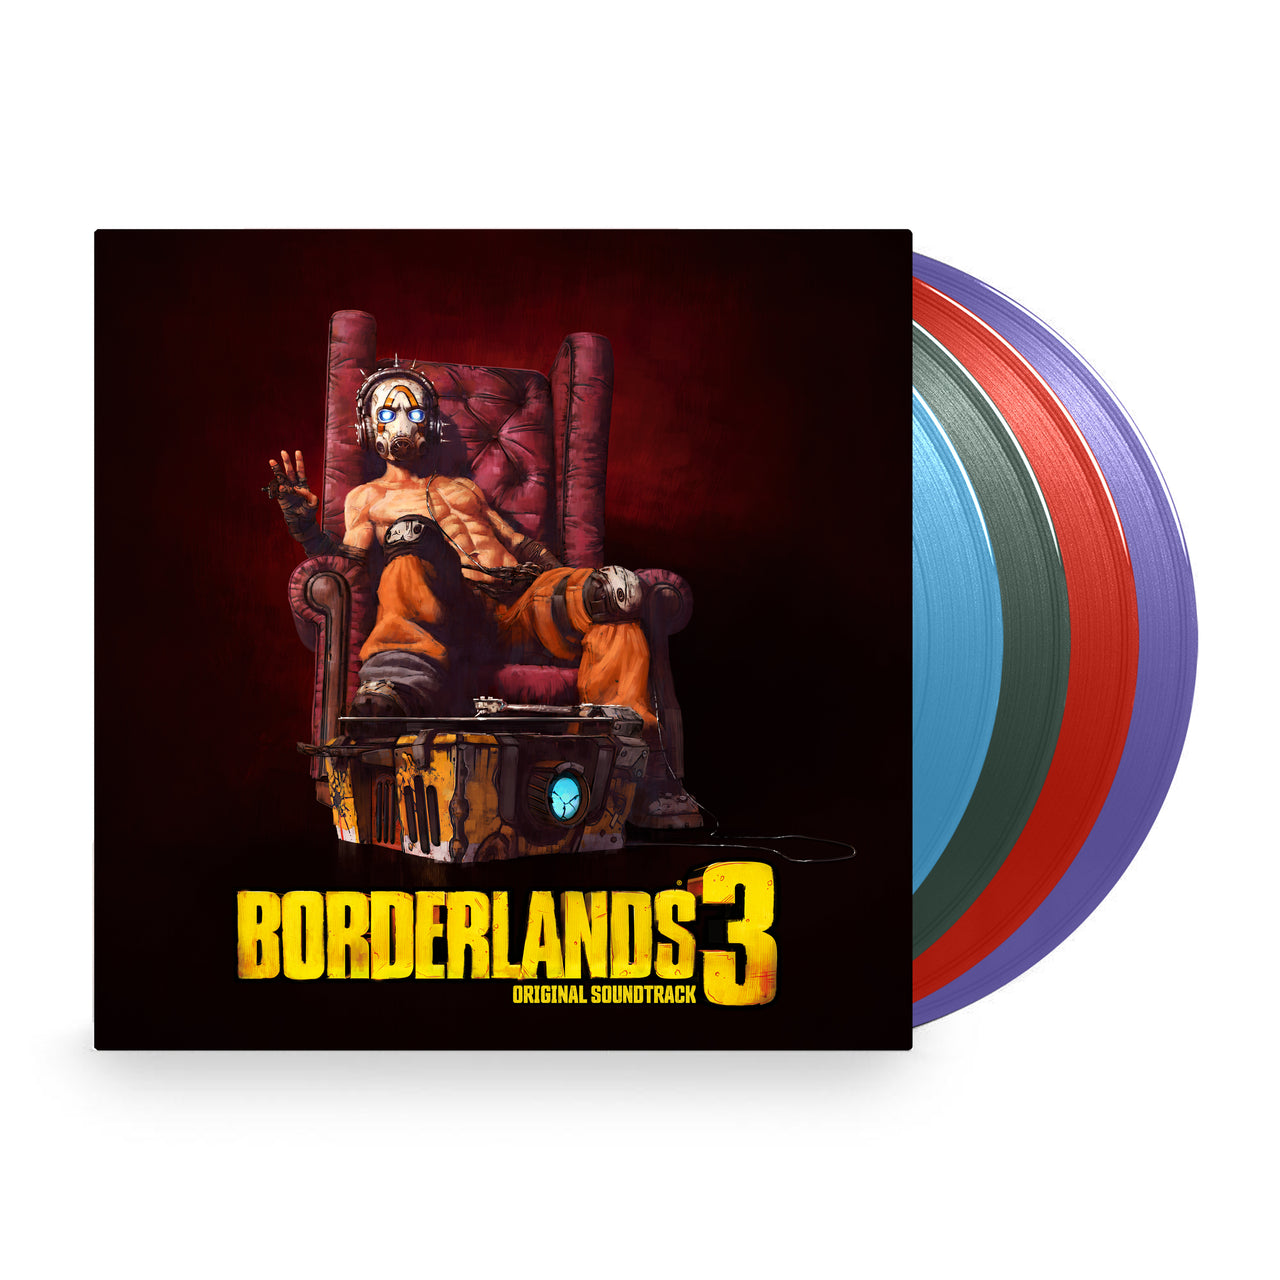 Borderlands 3 (Limited Special Edition X4LP Box Set)